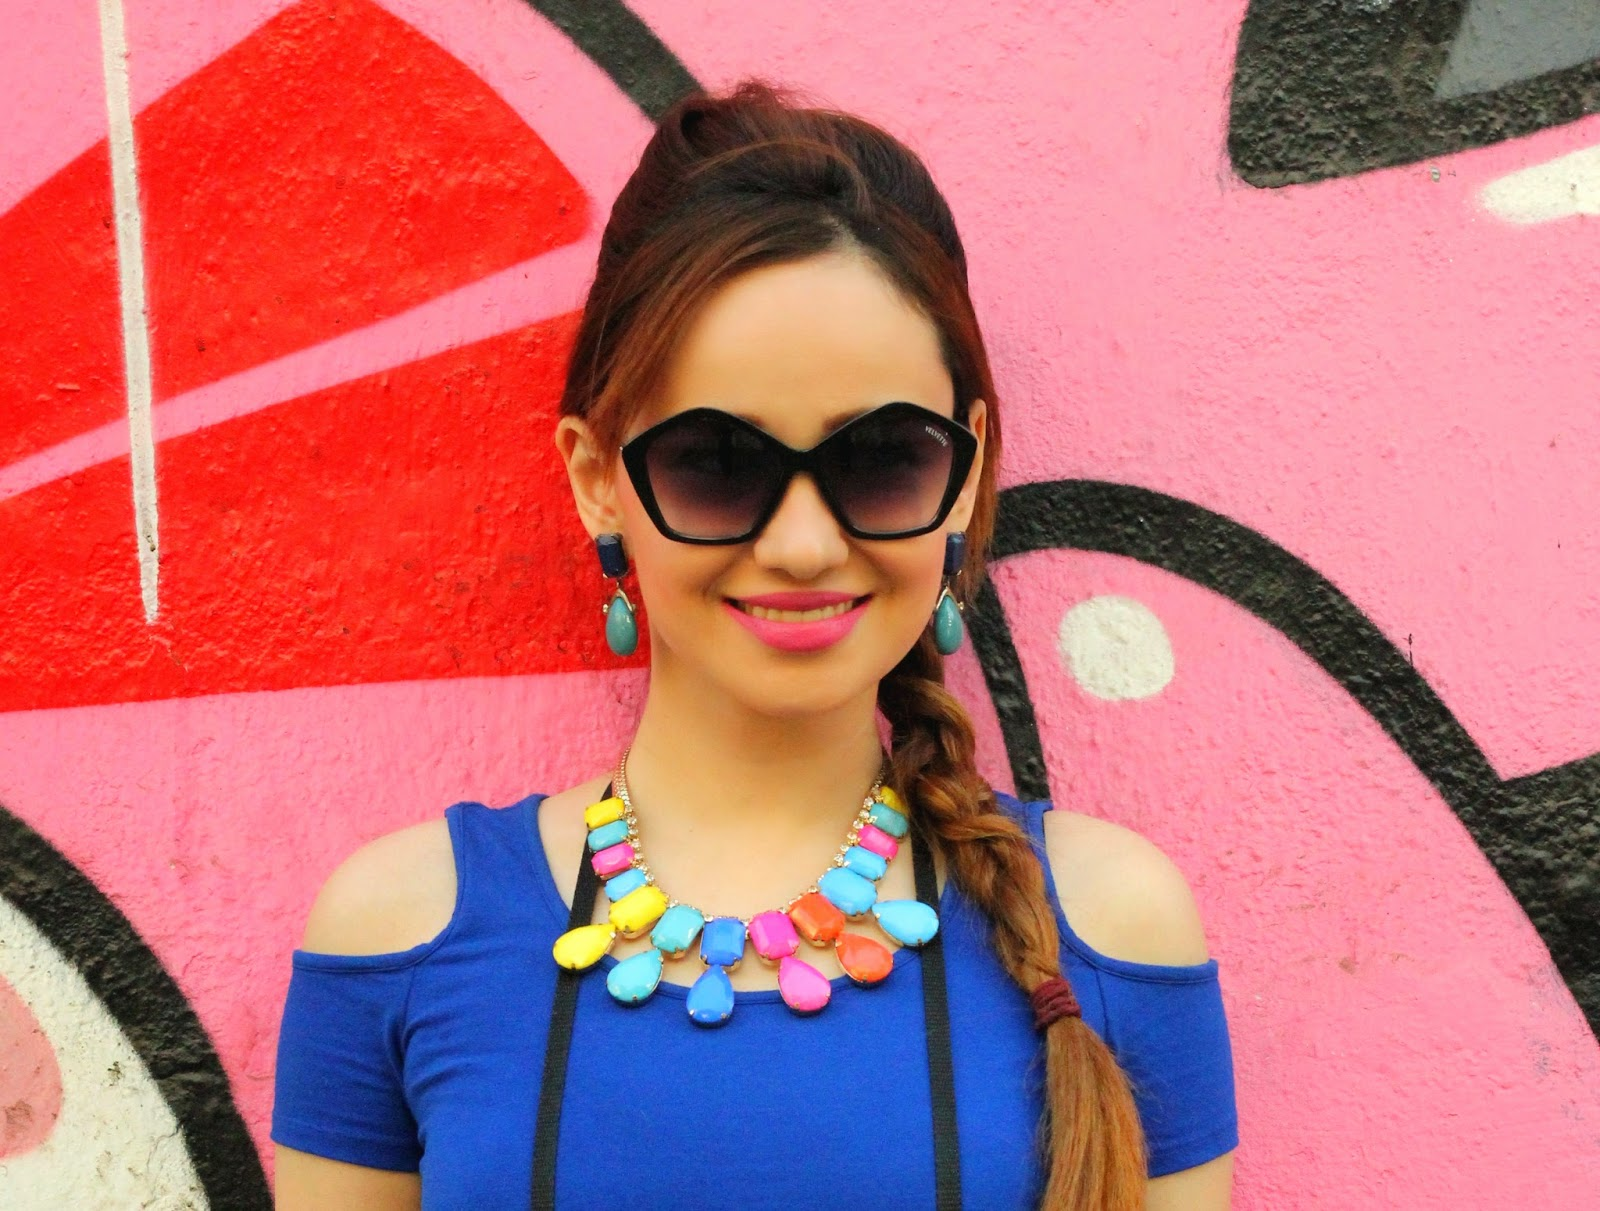 Penatgon Sunglasses & Candy Colour Necklace